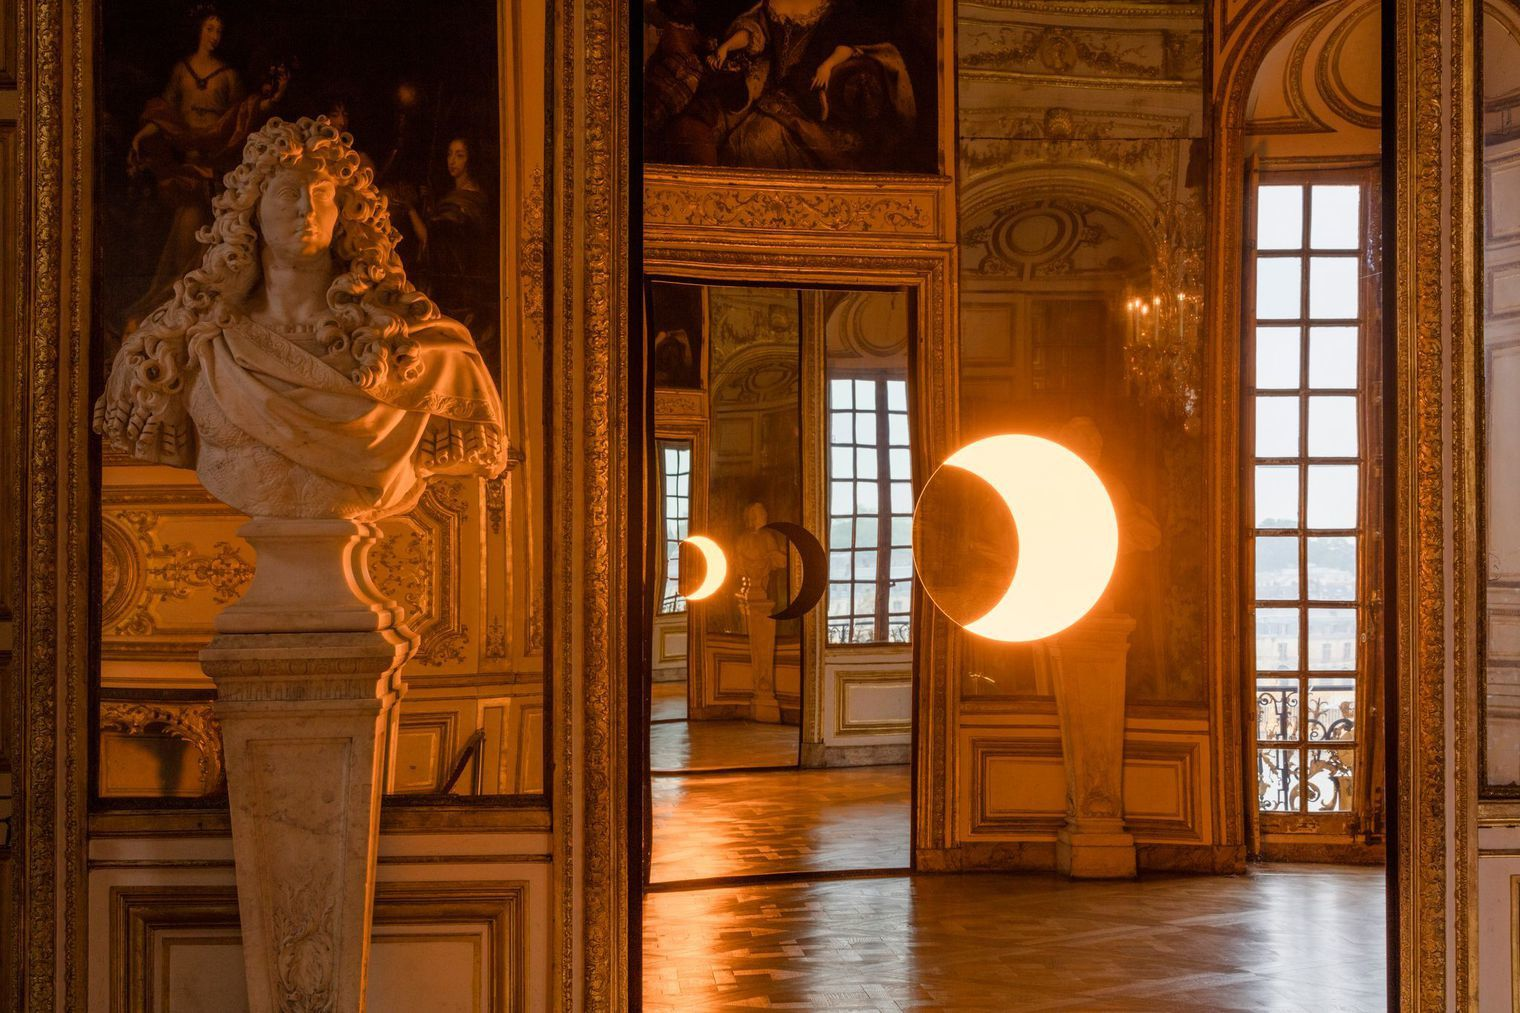 """Deep mirror(yellow)"", 2016  Olafur Eliasson,  Palace of Versailles. Photo © Anders Sune Berg - Courtesy of the artist&#x3B; neugerriemschneider, Berlin&#x3B; Tanya Bonakdar Gallery, New York"